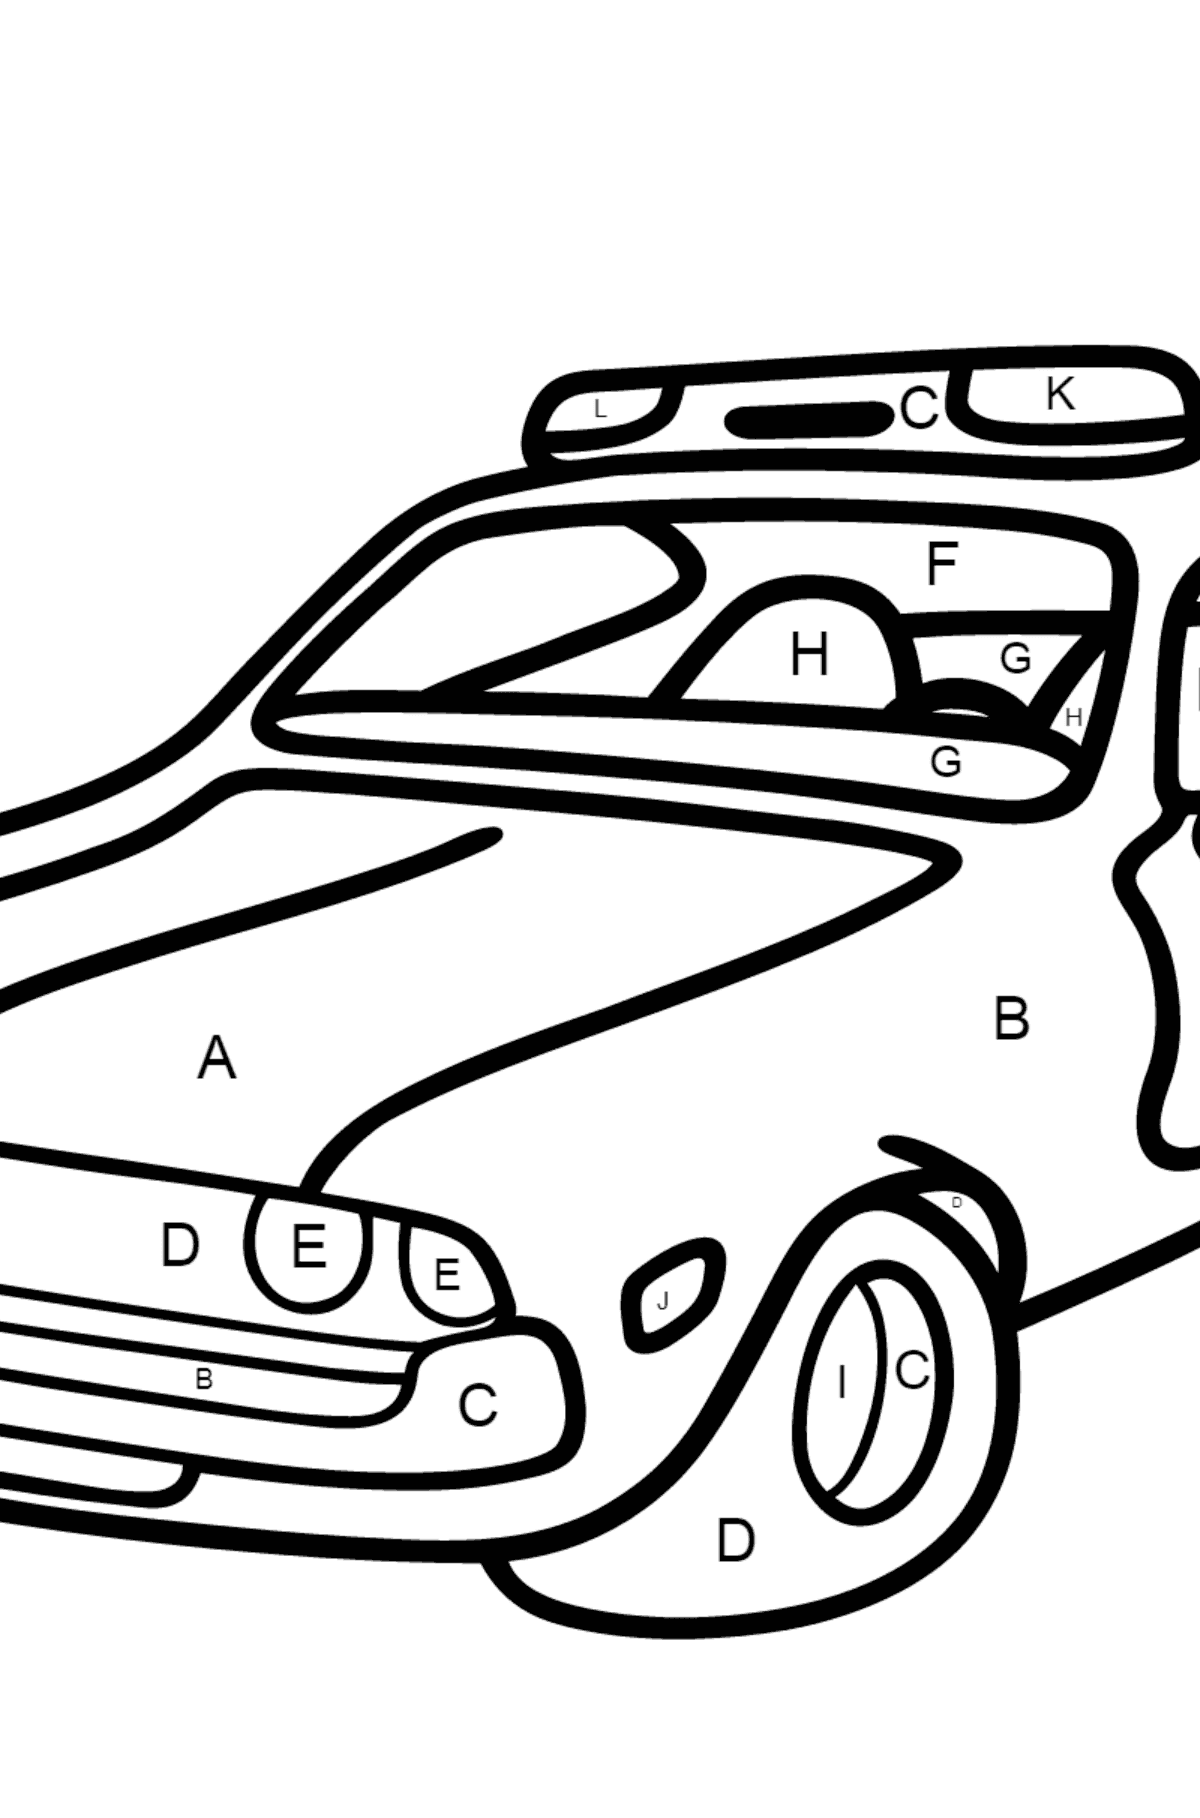 Coloring Page - A Dark Gray Police Car for Children  - Color by Letters